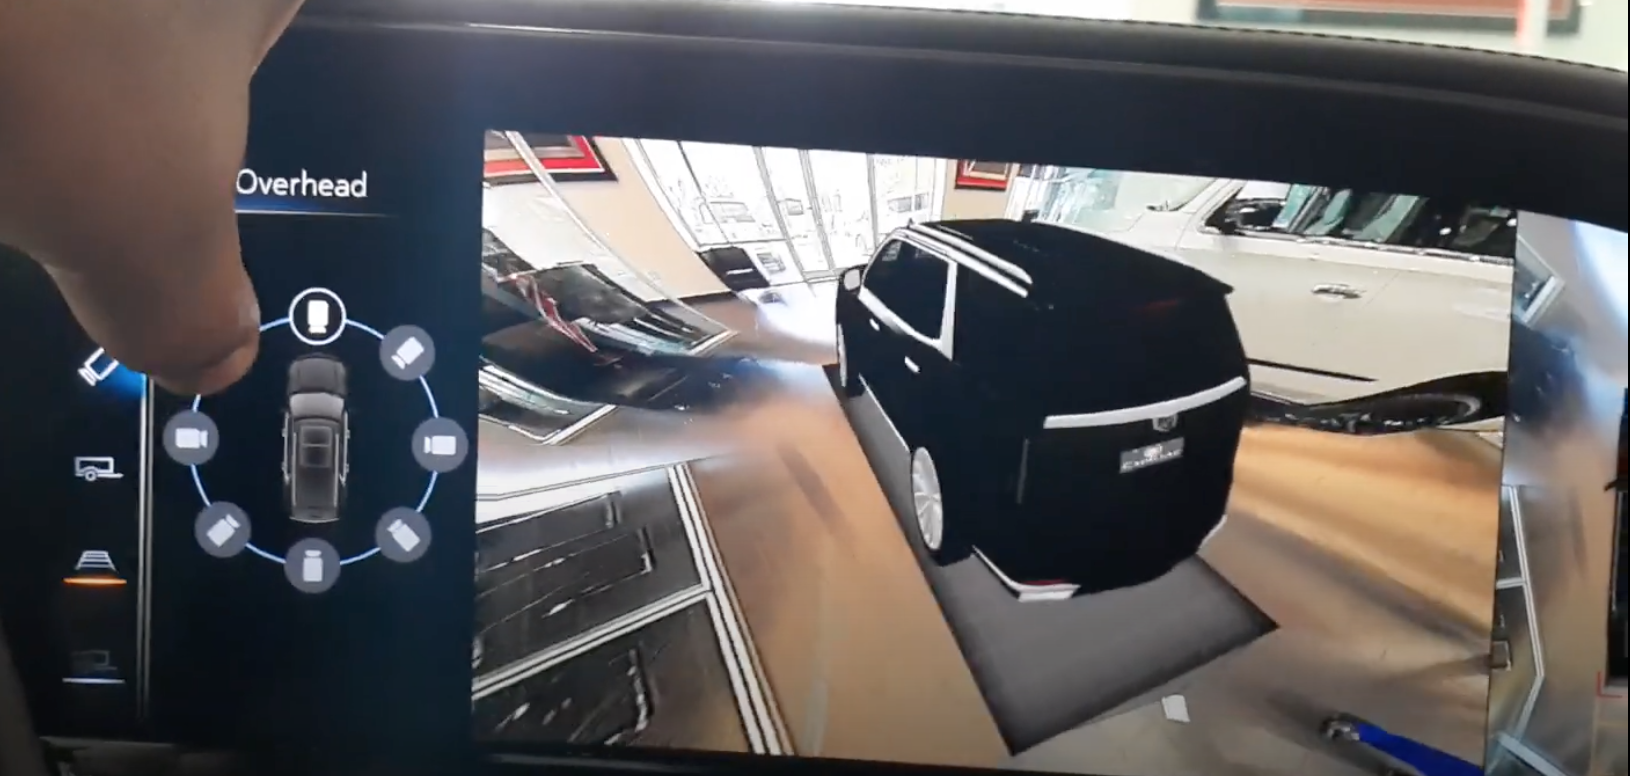 360 camera showing the back of the 3D model car